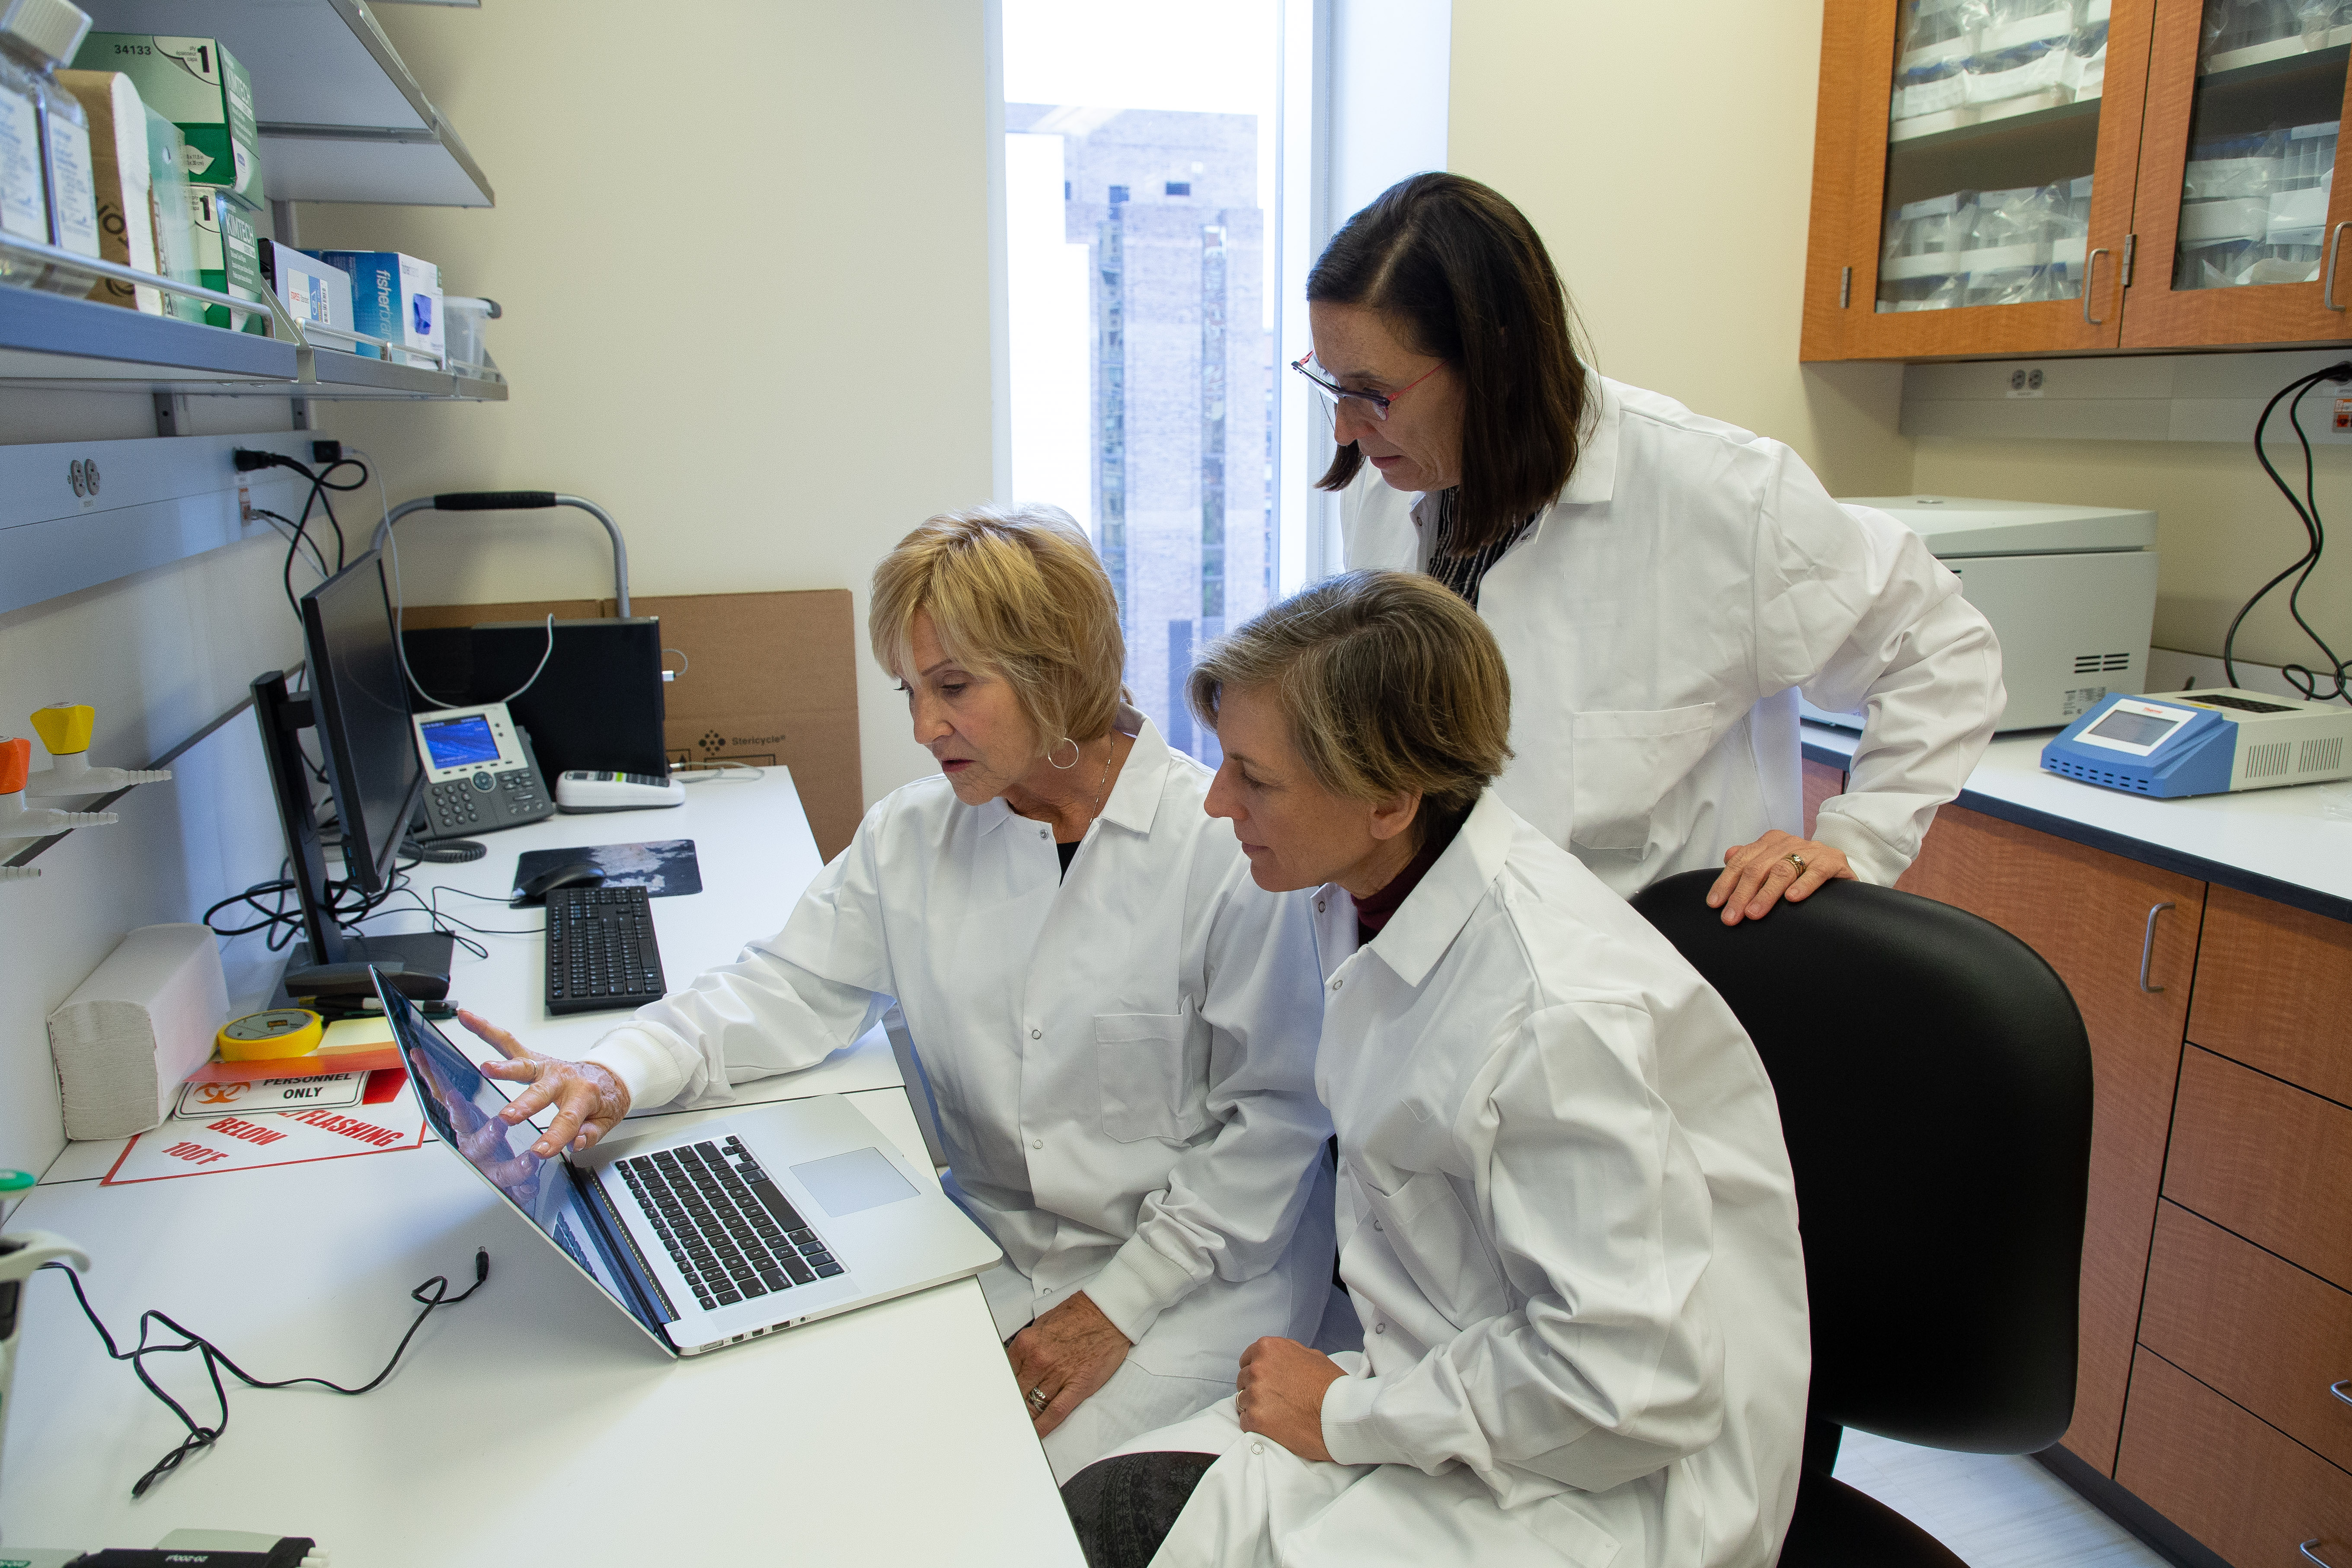 Dr. Gail Melkus, Dr. Susan Malone, and Dr. Fay Wright in the lab.